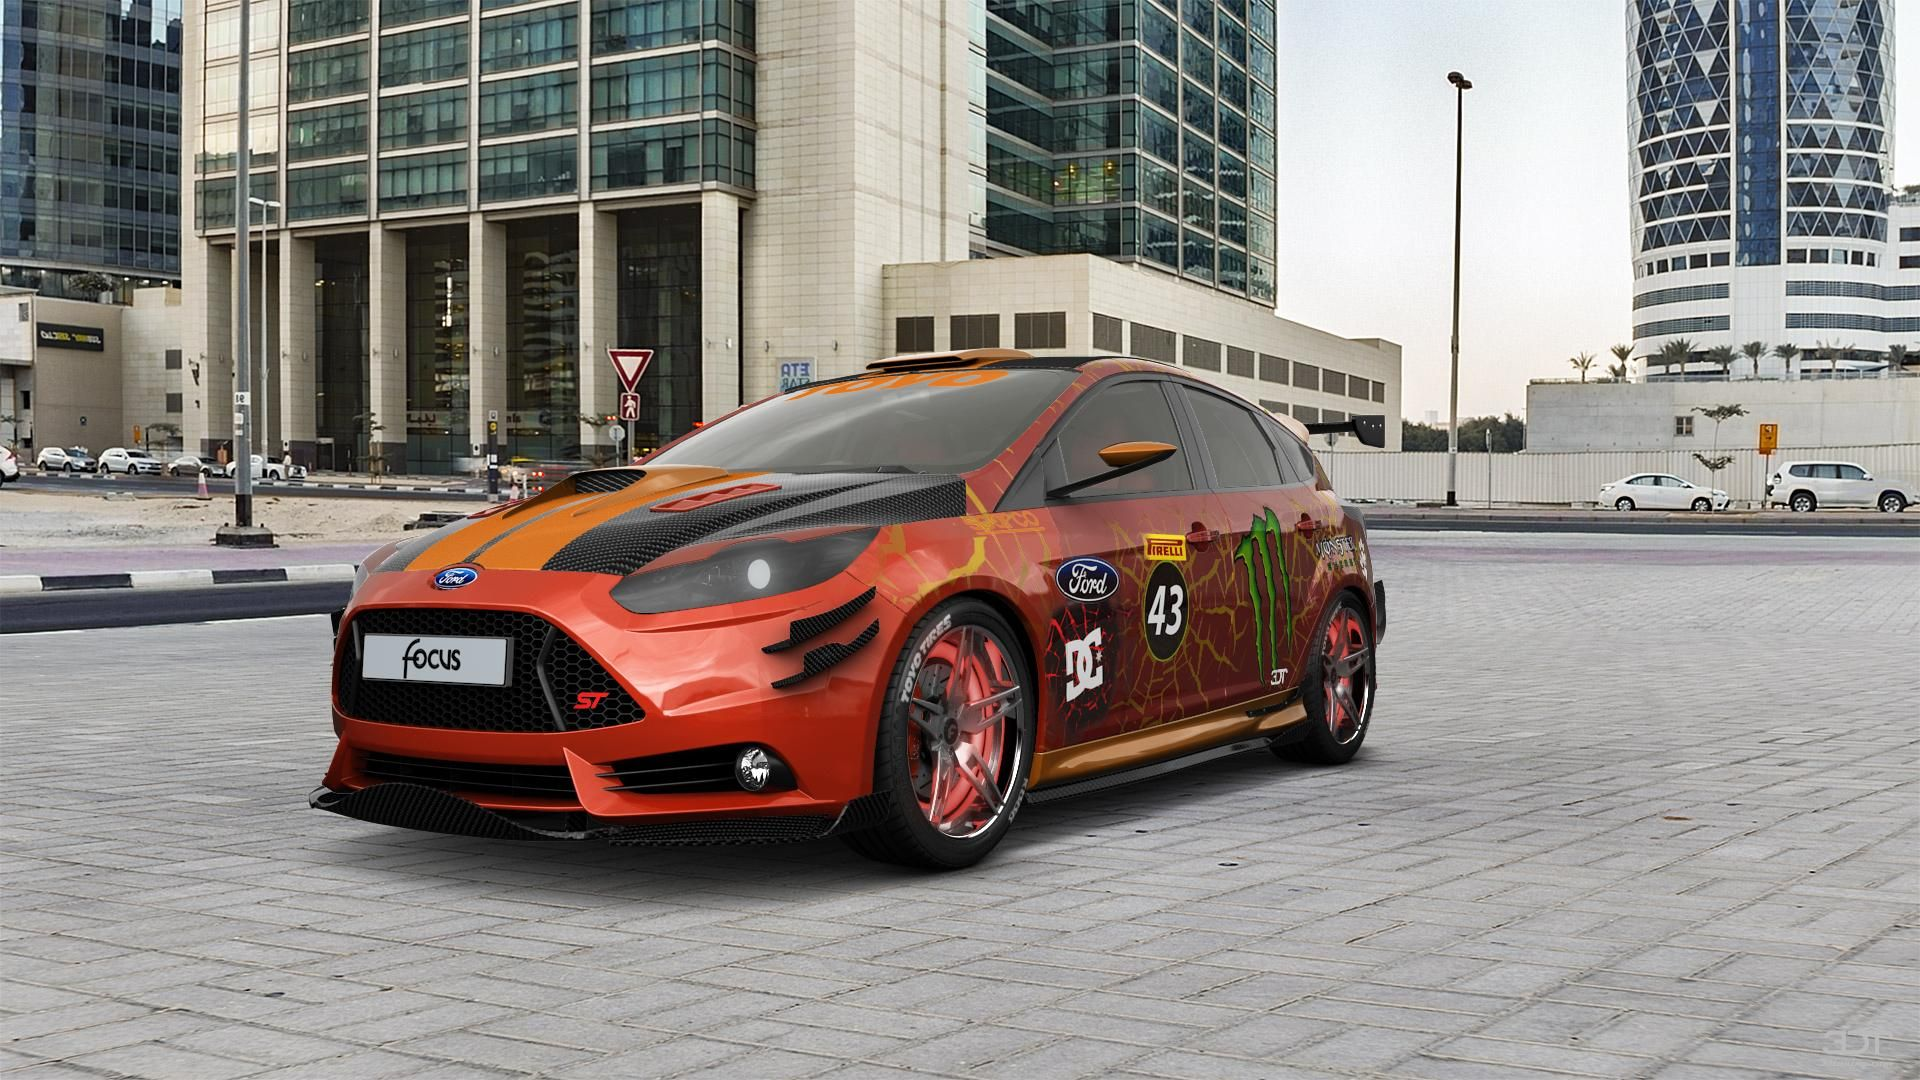 Checkout My Tuning Ford Focus 2011 At 3dtuning 3dtuning Tuning